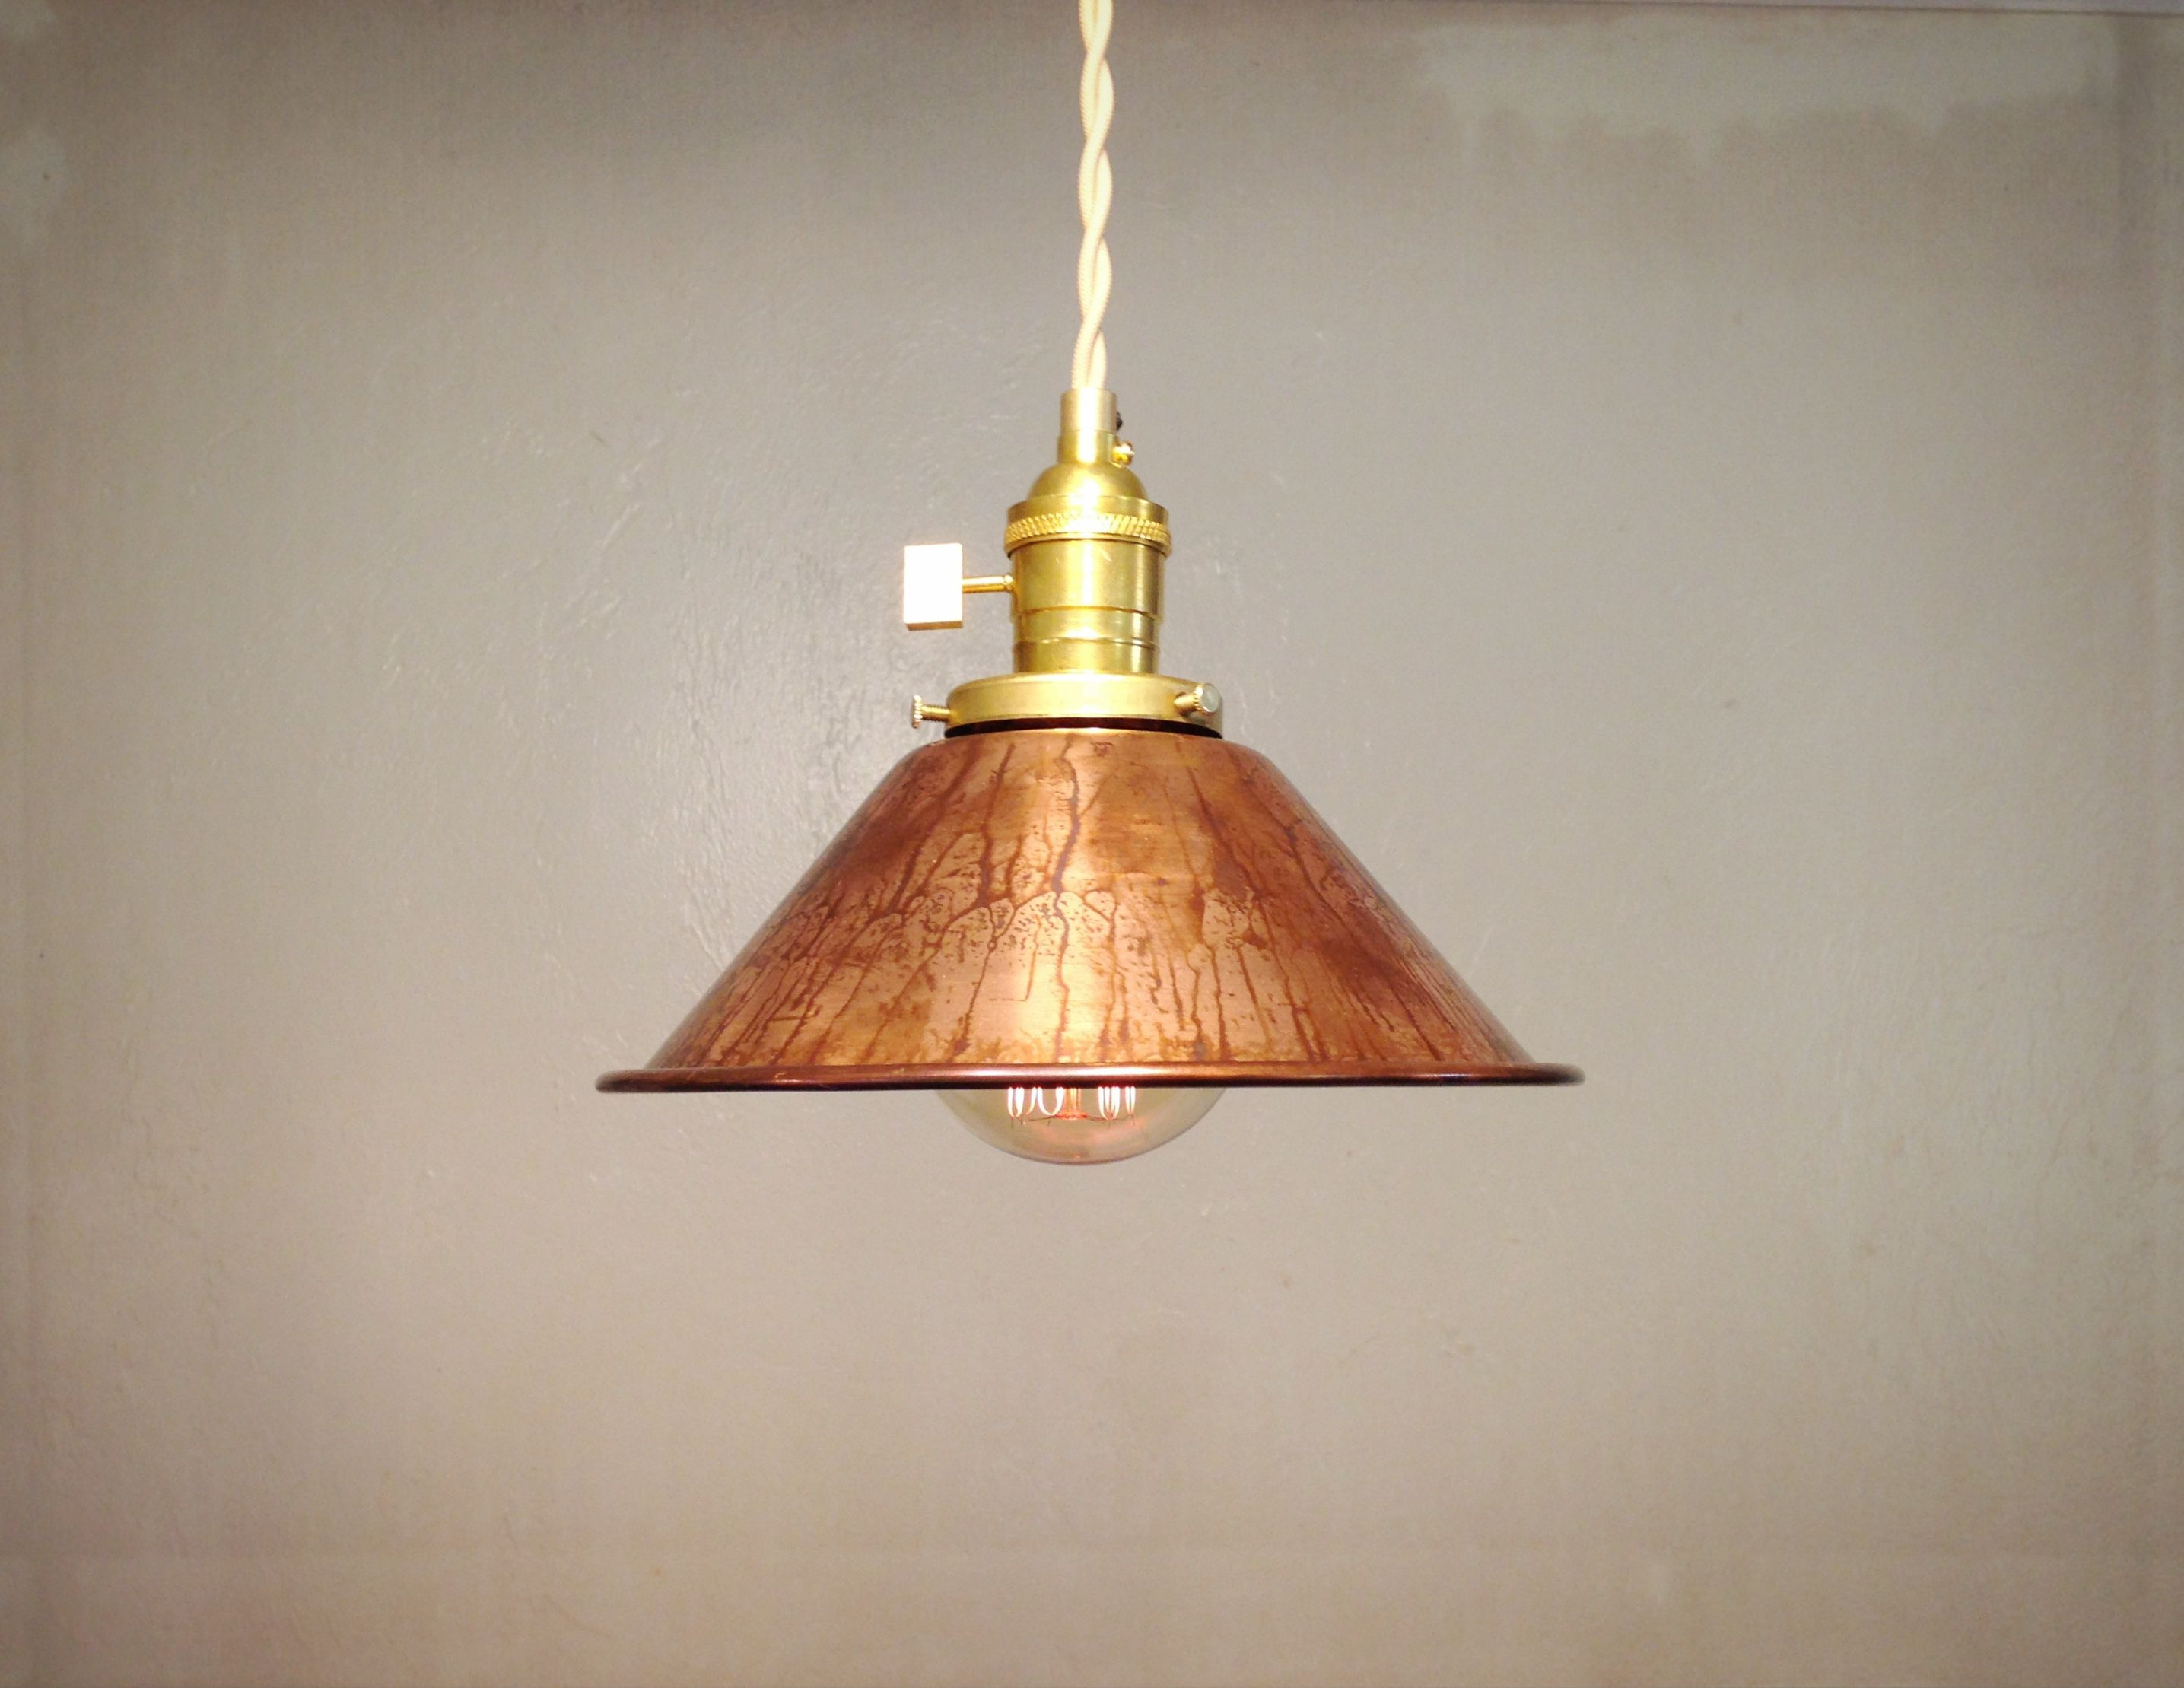 Vintage Copper Pendant Lamp Industrial Lighting Steampunk Lamp Hanging Low Price